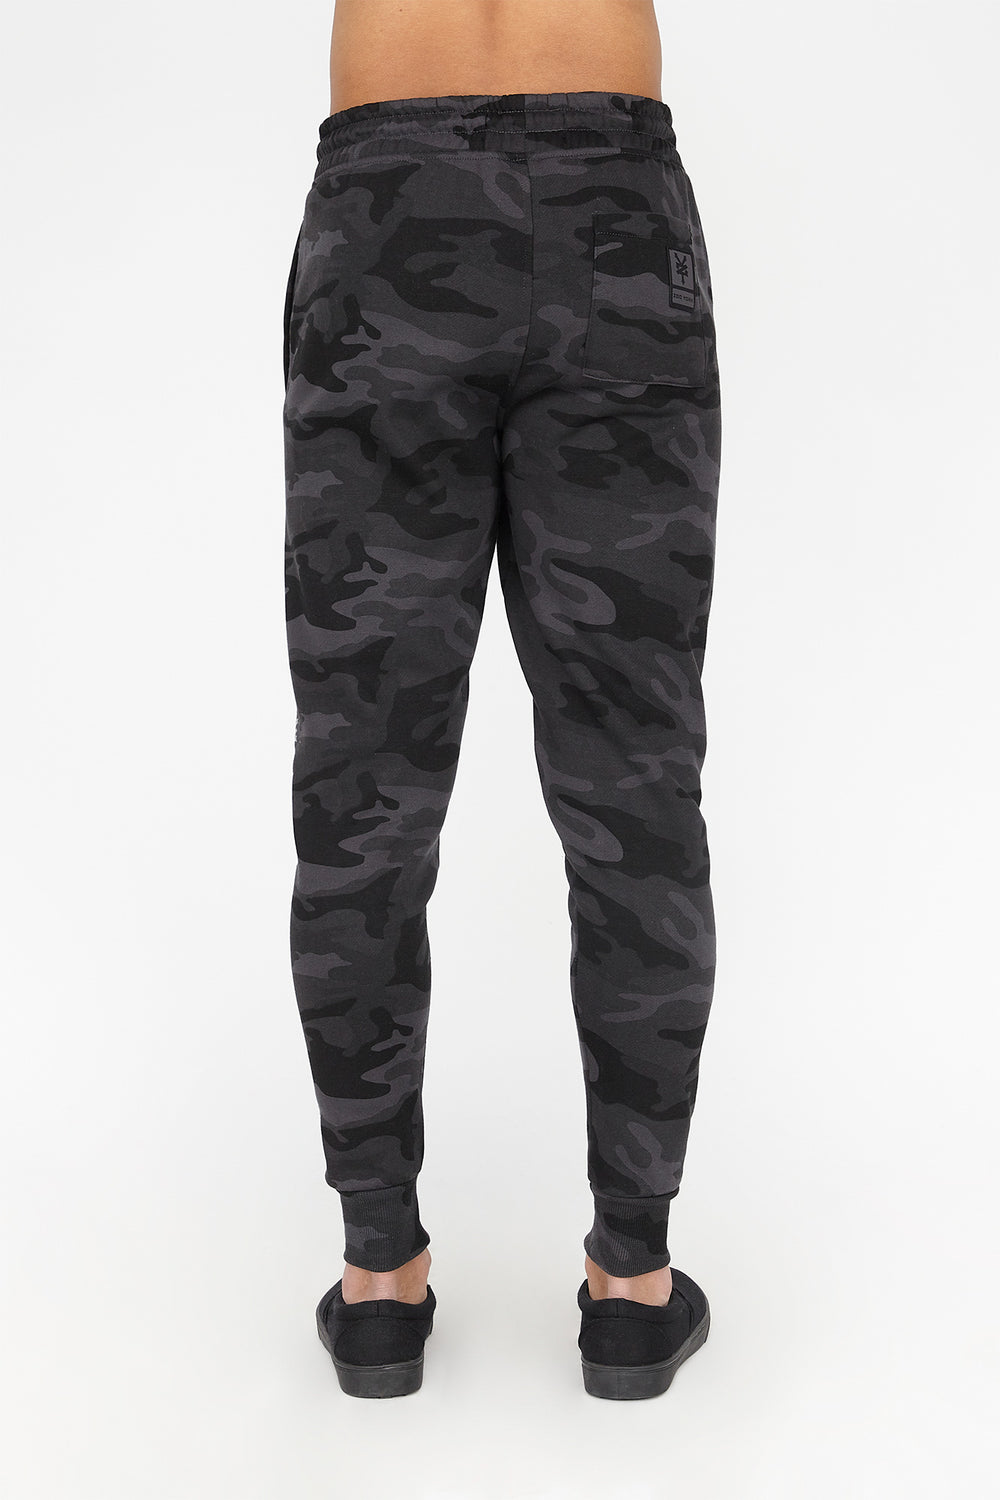 Zoo York Mens Reflective Camo Jogger Black with White